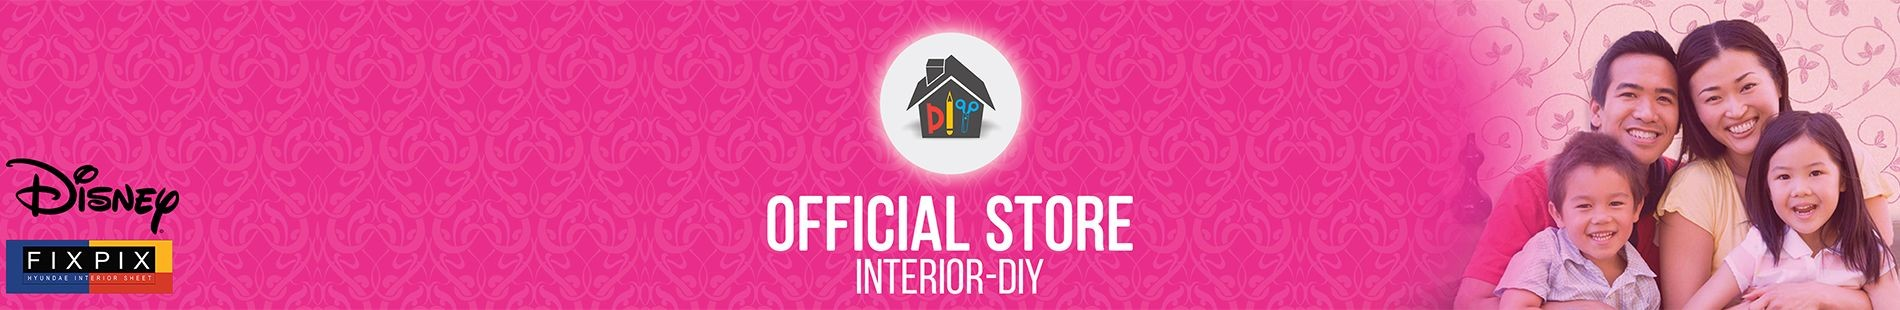 Interior DIY Official